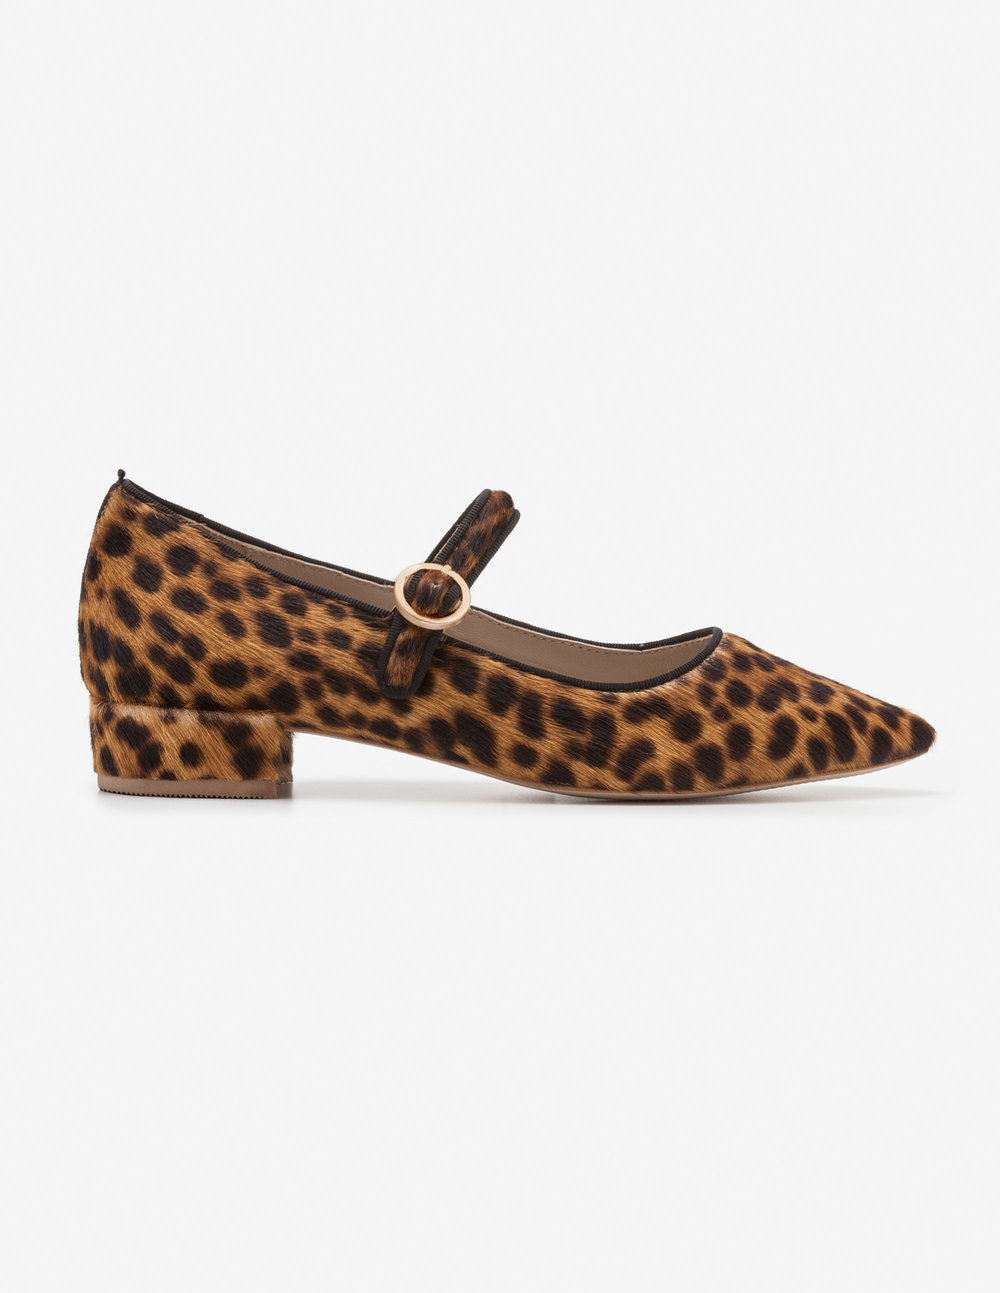 Leopard Mary-Jane  Boden £110